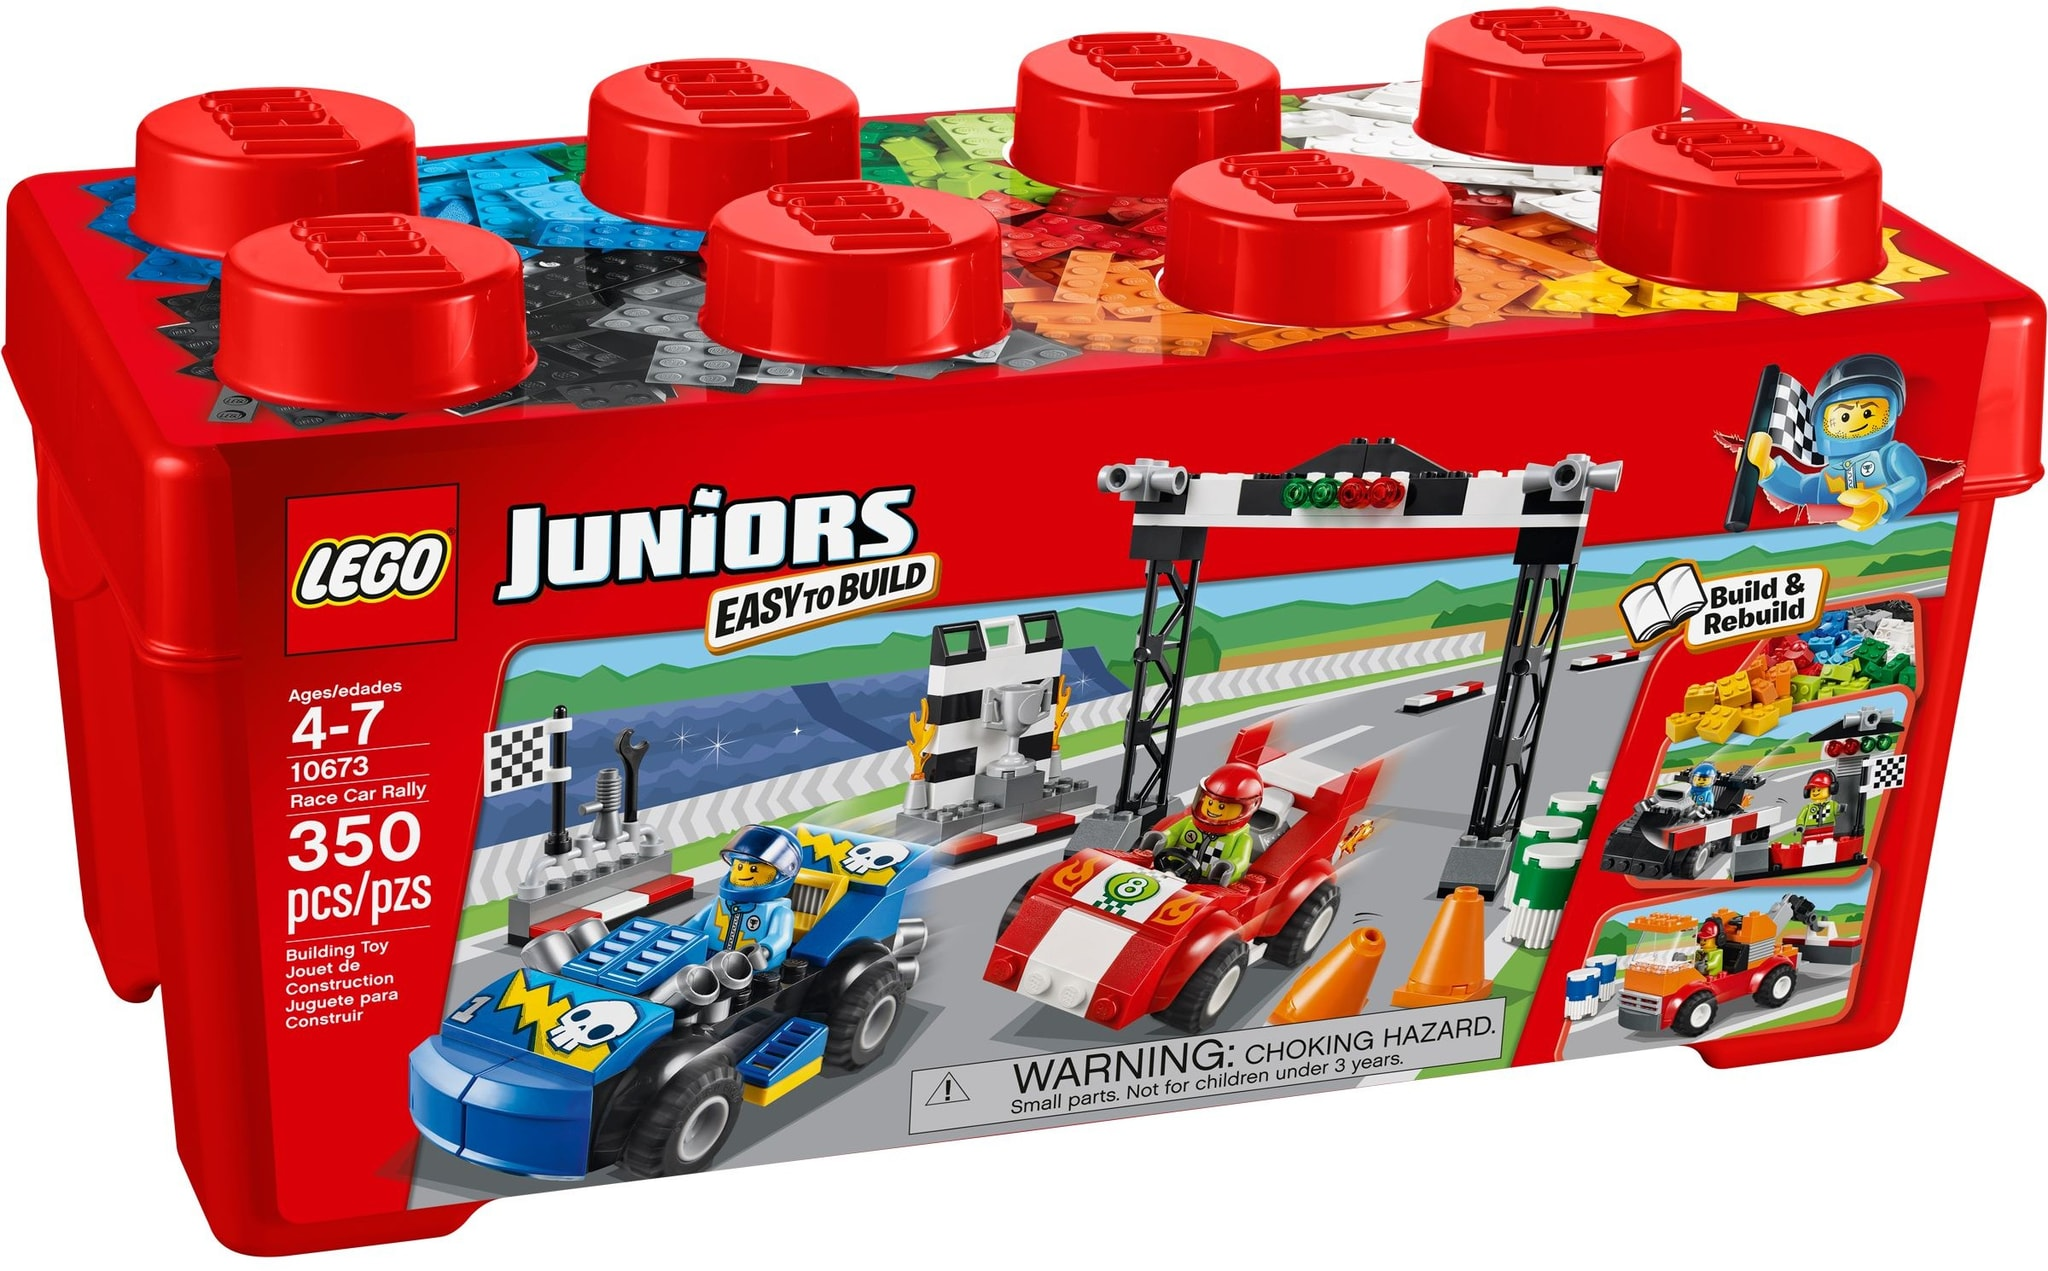 LEGO 10673 - Juniors - Race Car Rally